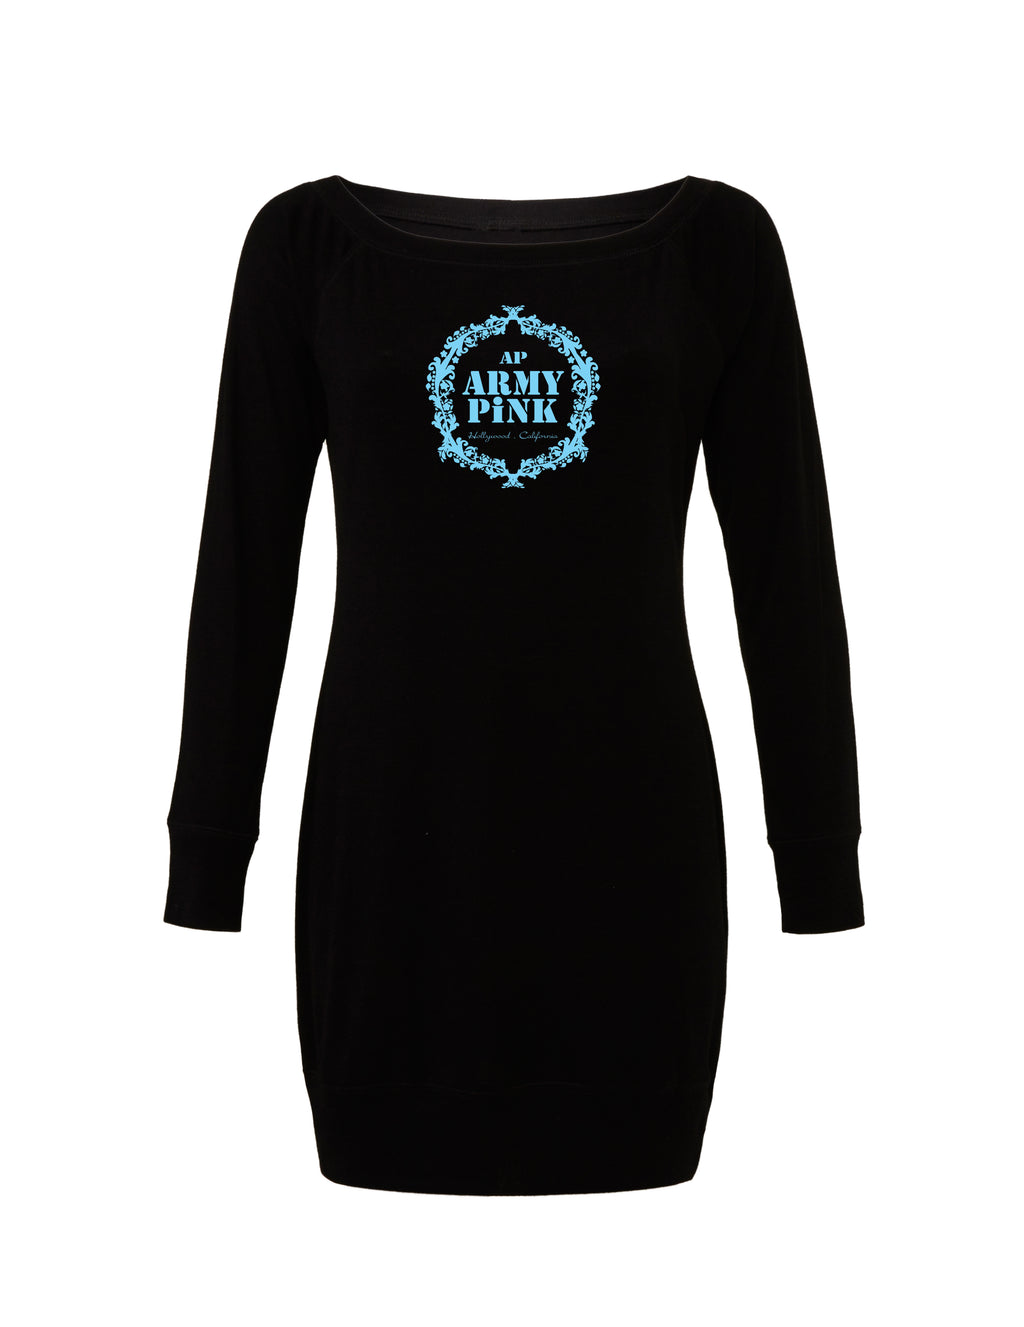 Black Lightweight Sweater Dress with blue teal wreath graphic for 55.00 at ARMY PINK